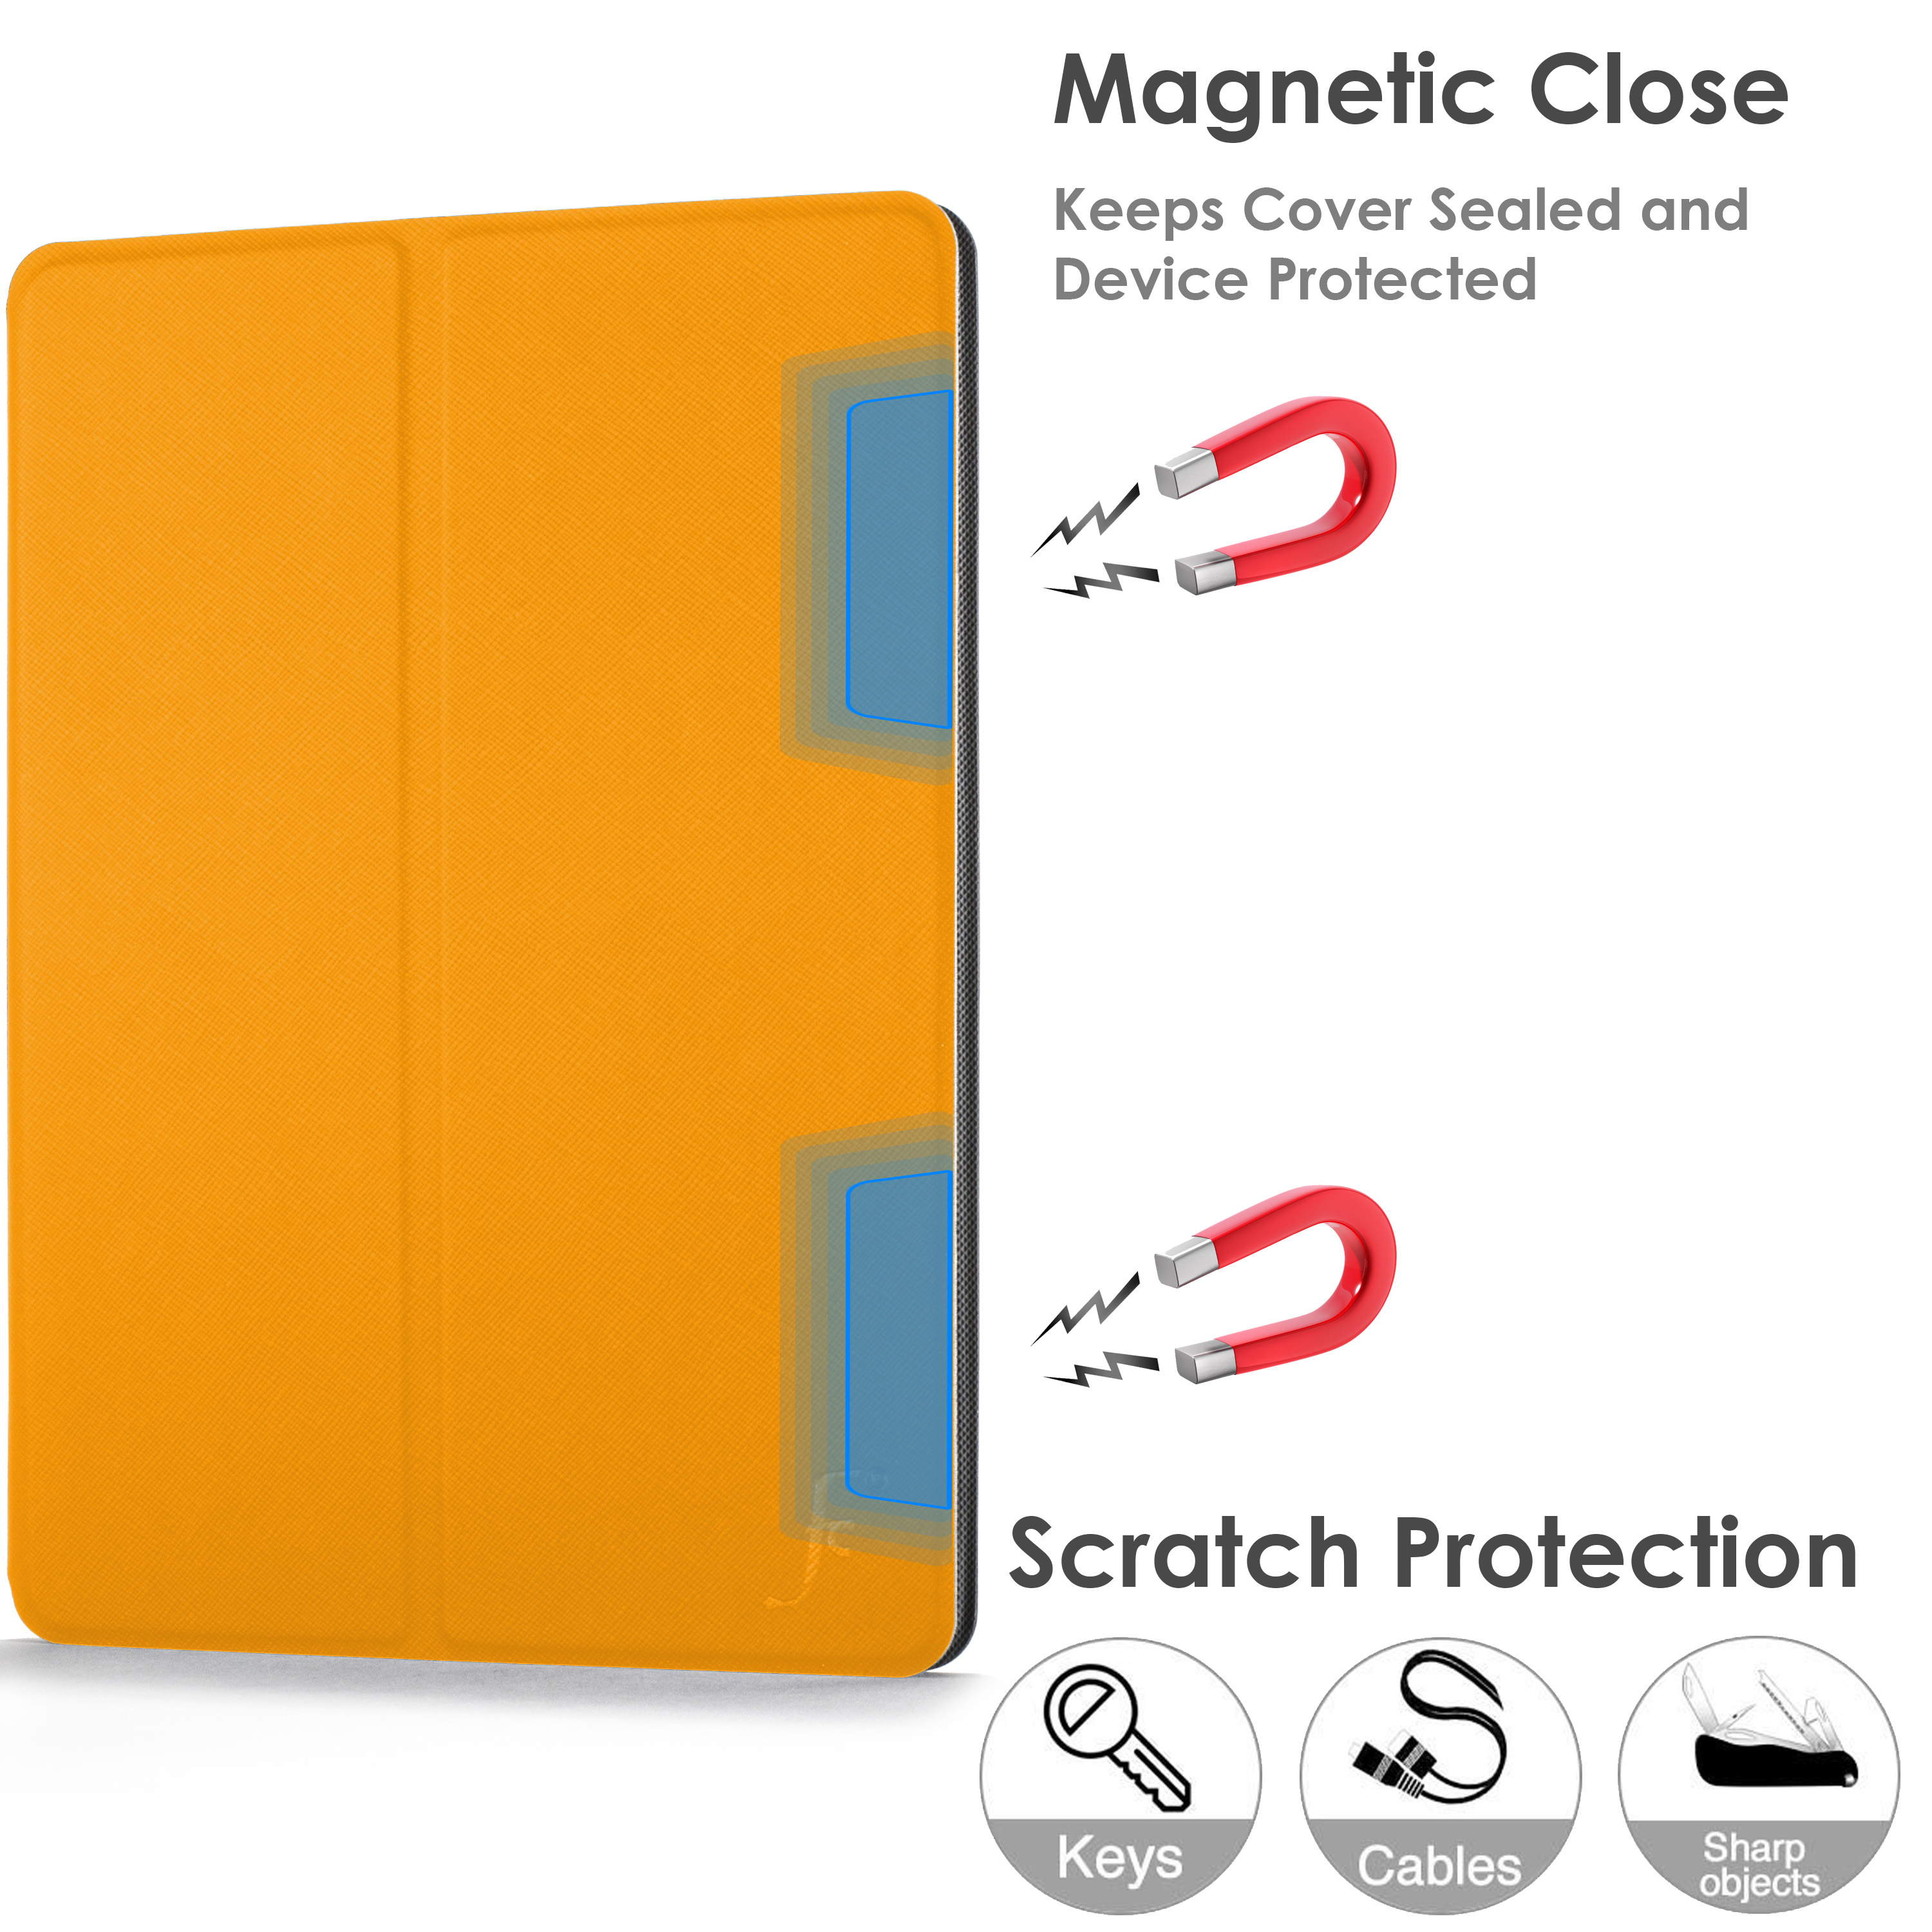 miniature 111 - Samsung Galaxy Tab A 10.1 2019 Étui Magnétique Protection & Support + Stylet